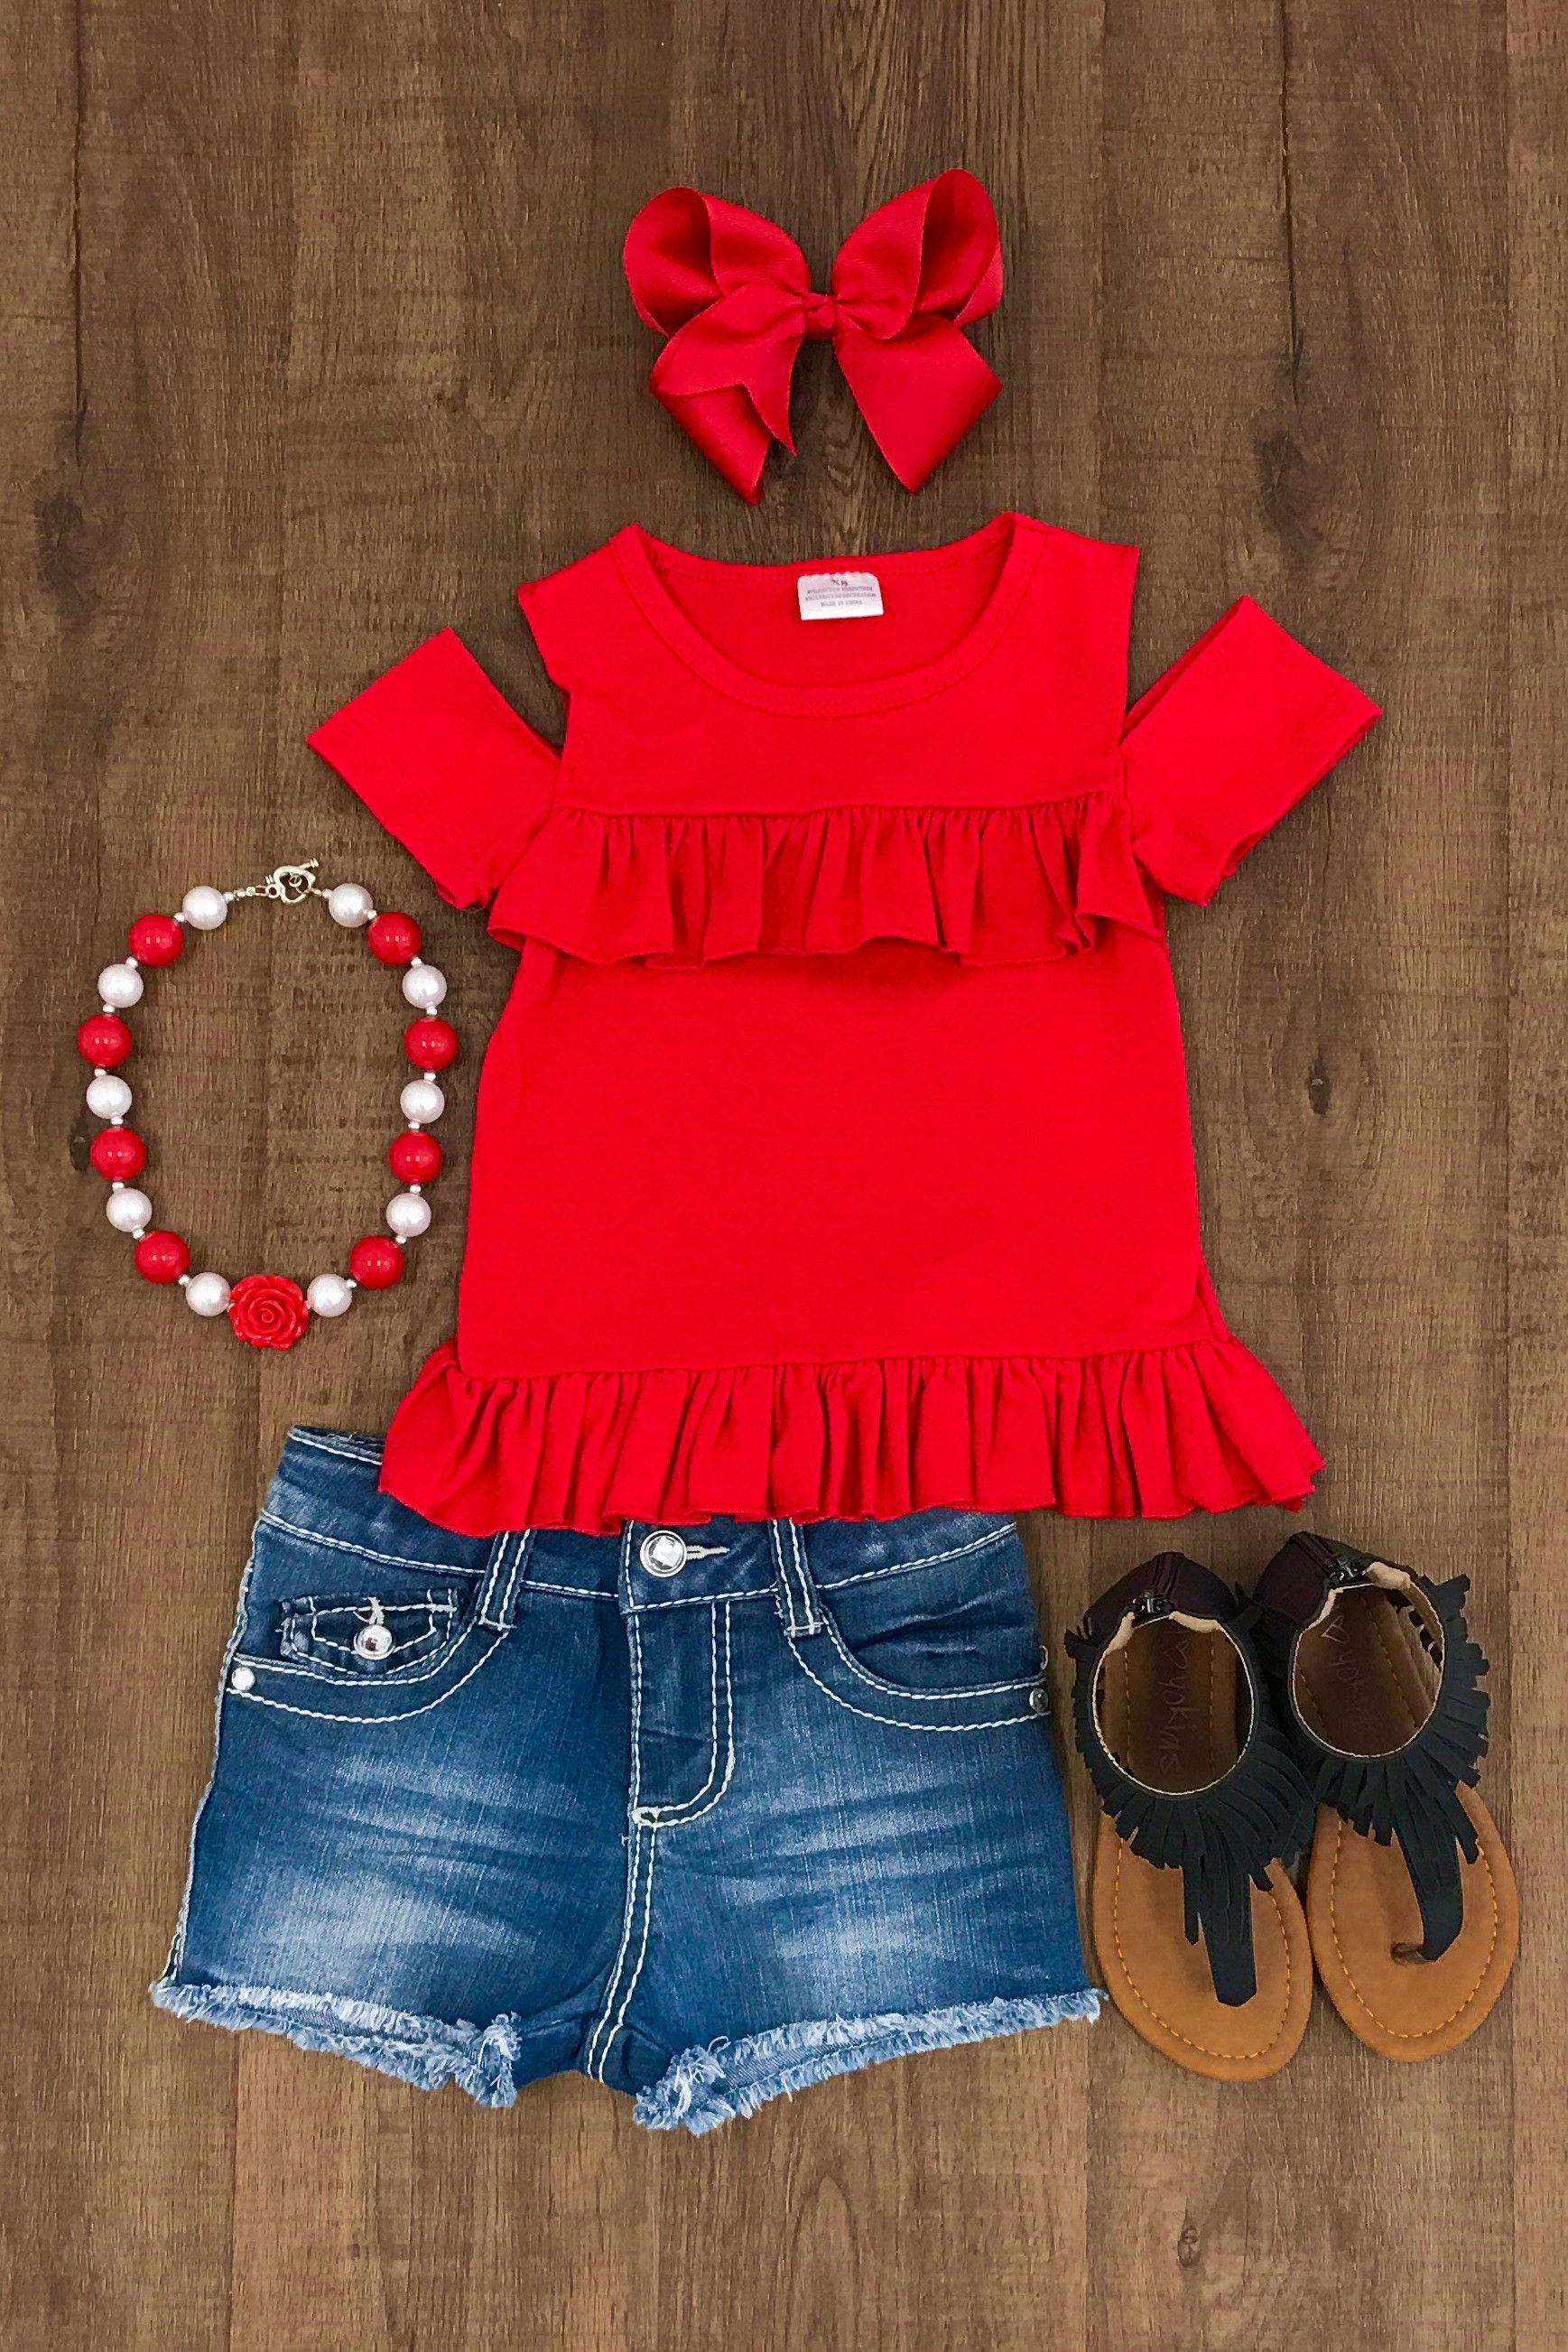 Red Sunkissed Shoulder Shirt Boutique Outfits Kids Fashion Cute